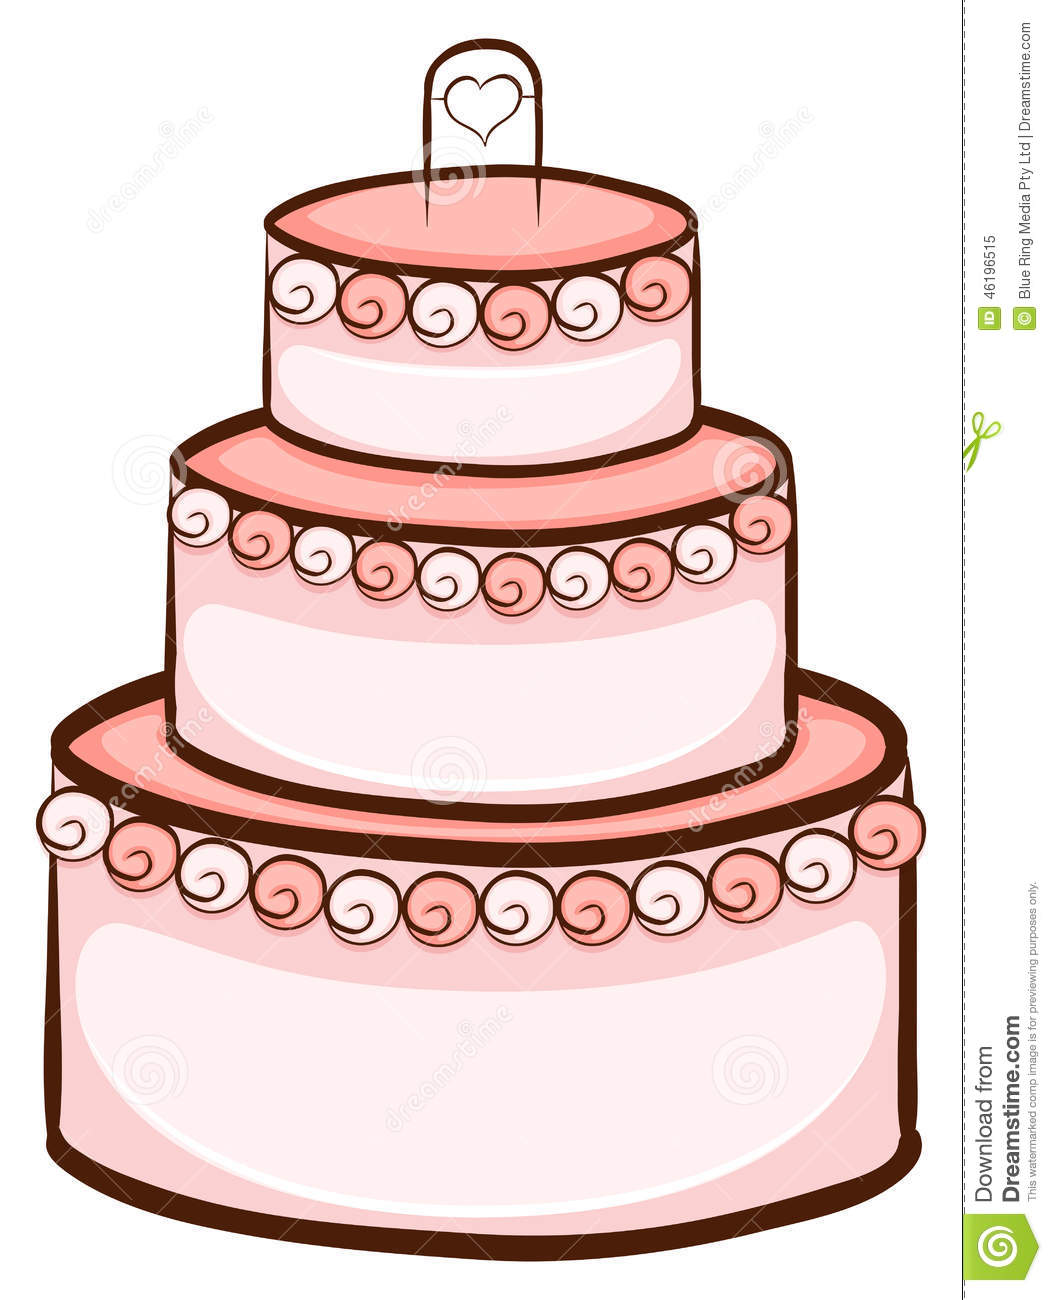 A Simple Drawing Of A Wedding Cake Stock Vector - Illustration of ...